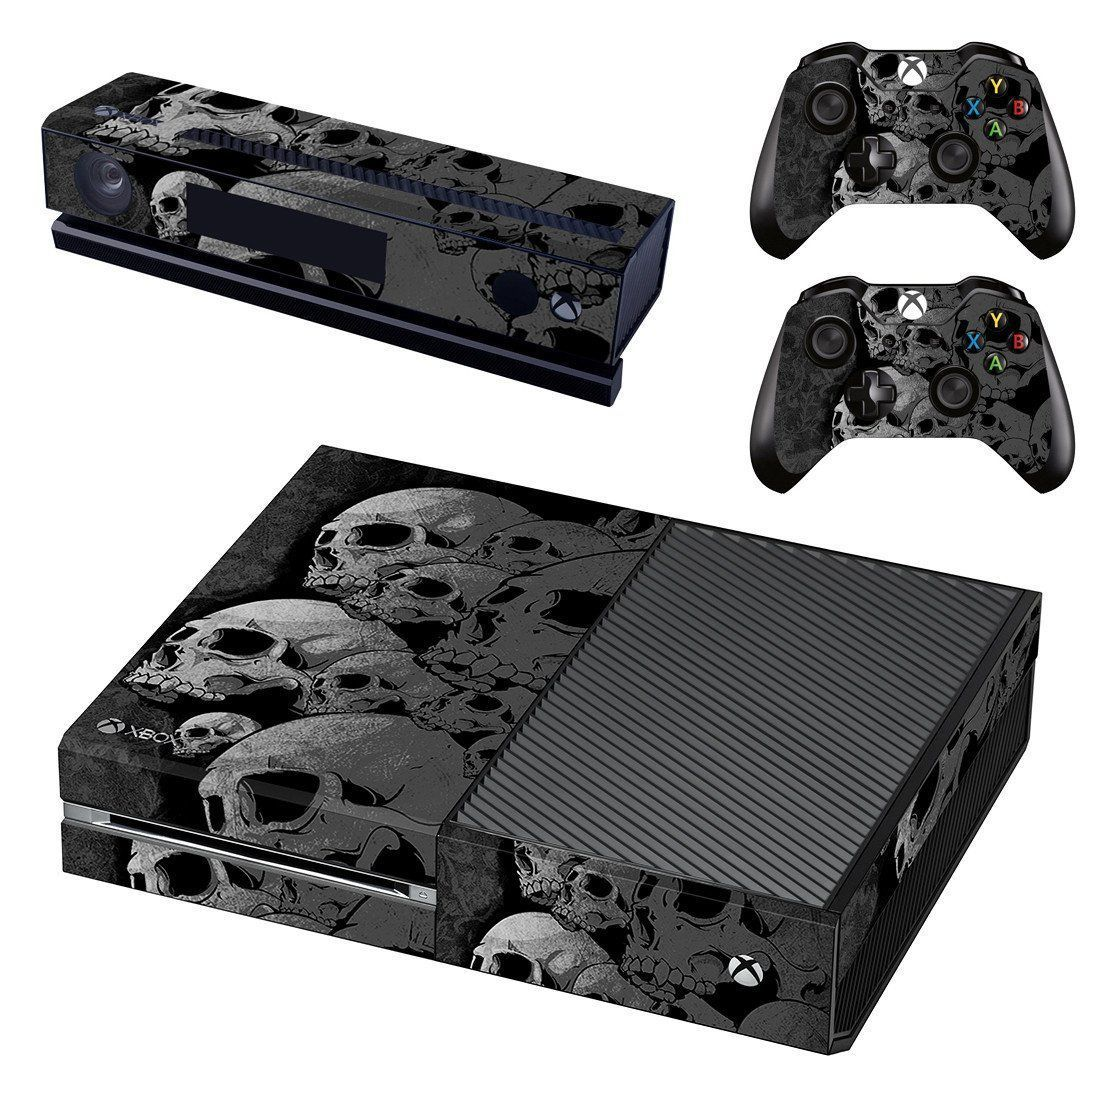 2 Controller /& Kinect Skin Set Xbox One Console Skin Decal Sticker Skull Metal Design